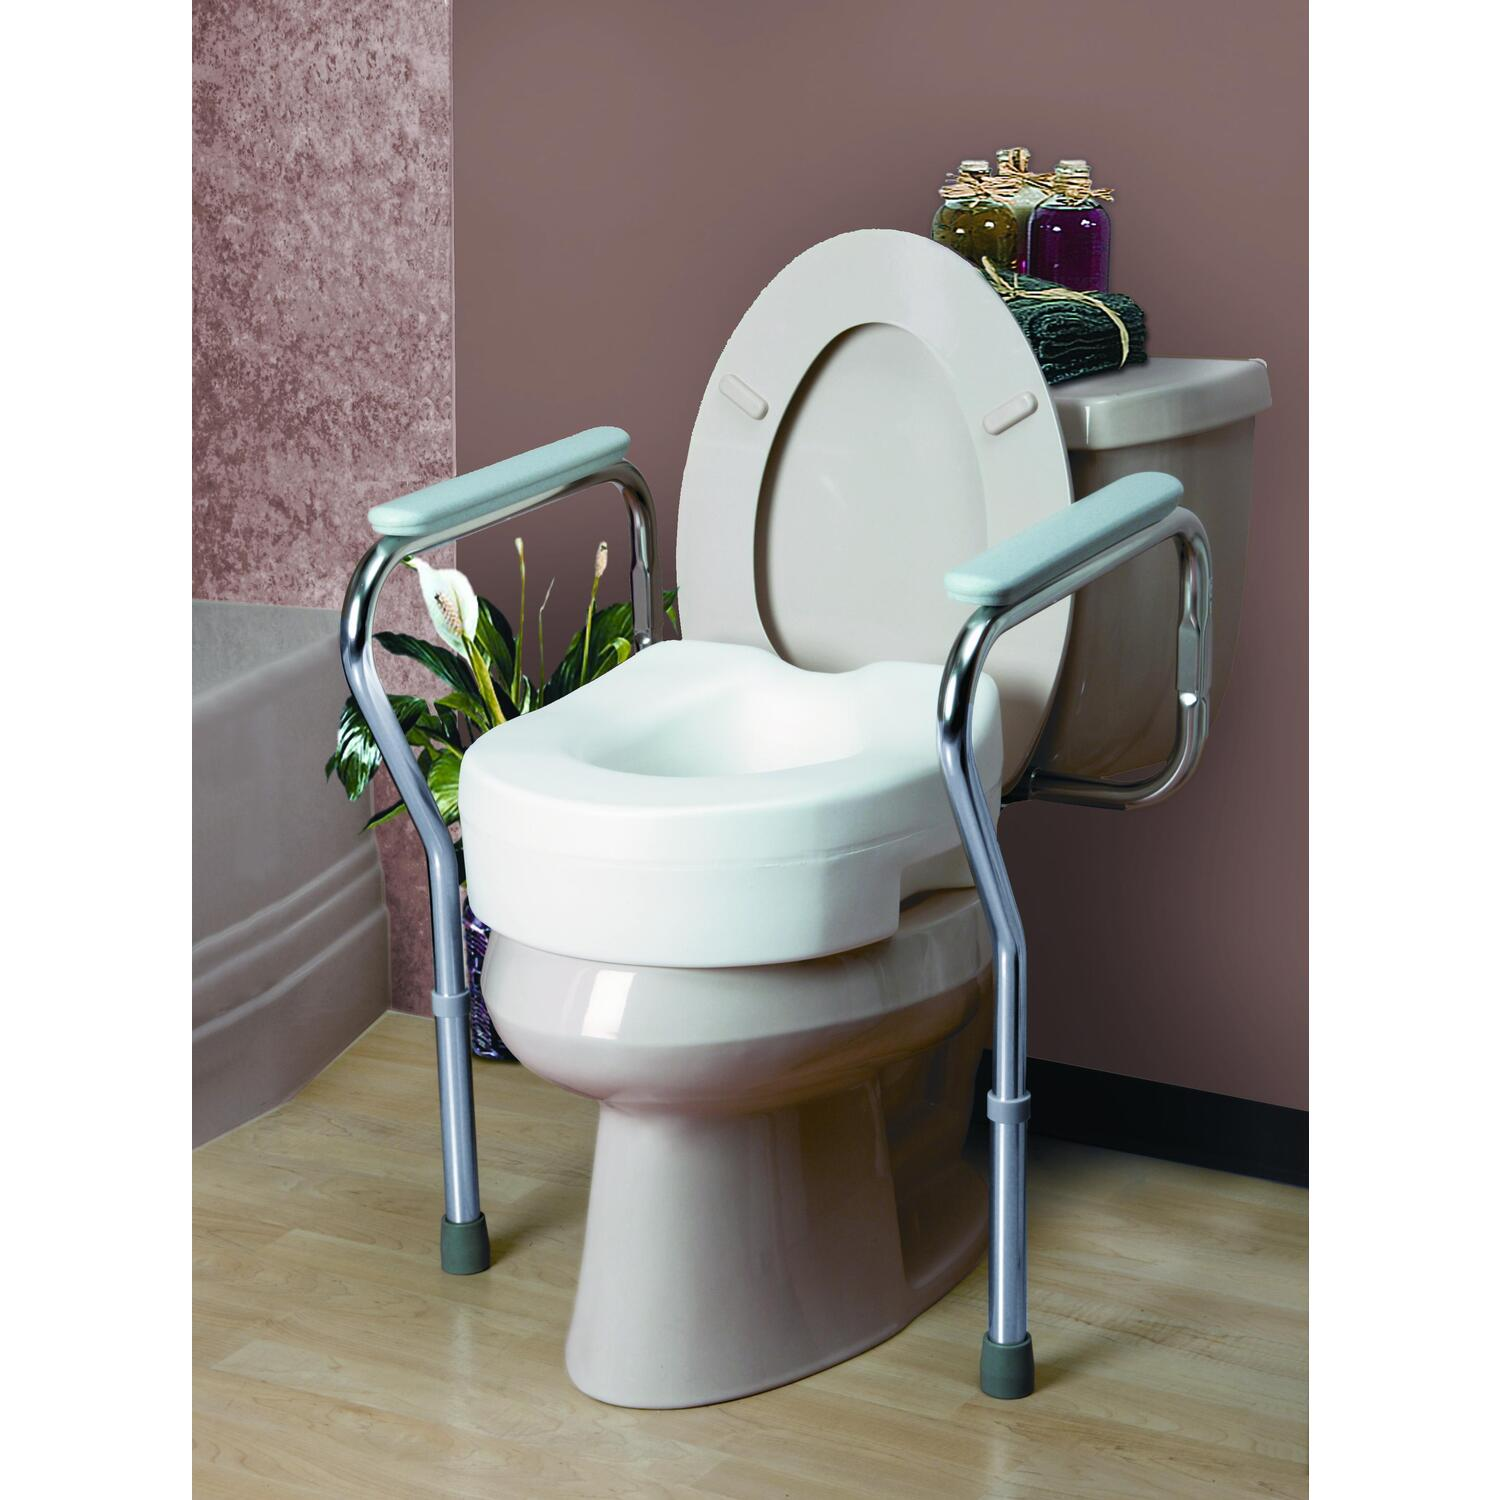 handicap potty chair dining room table and chairs for sale invacare toilet safety frame 32 99 46 94